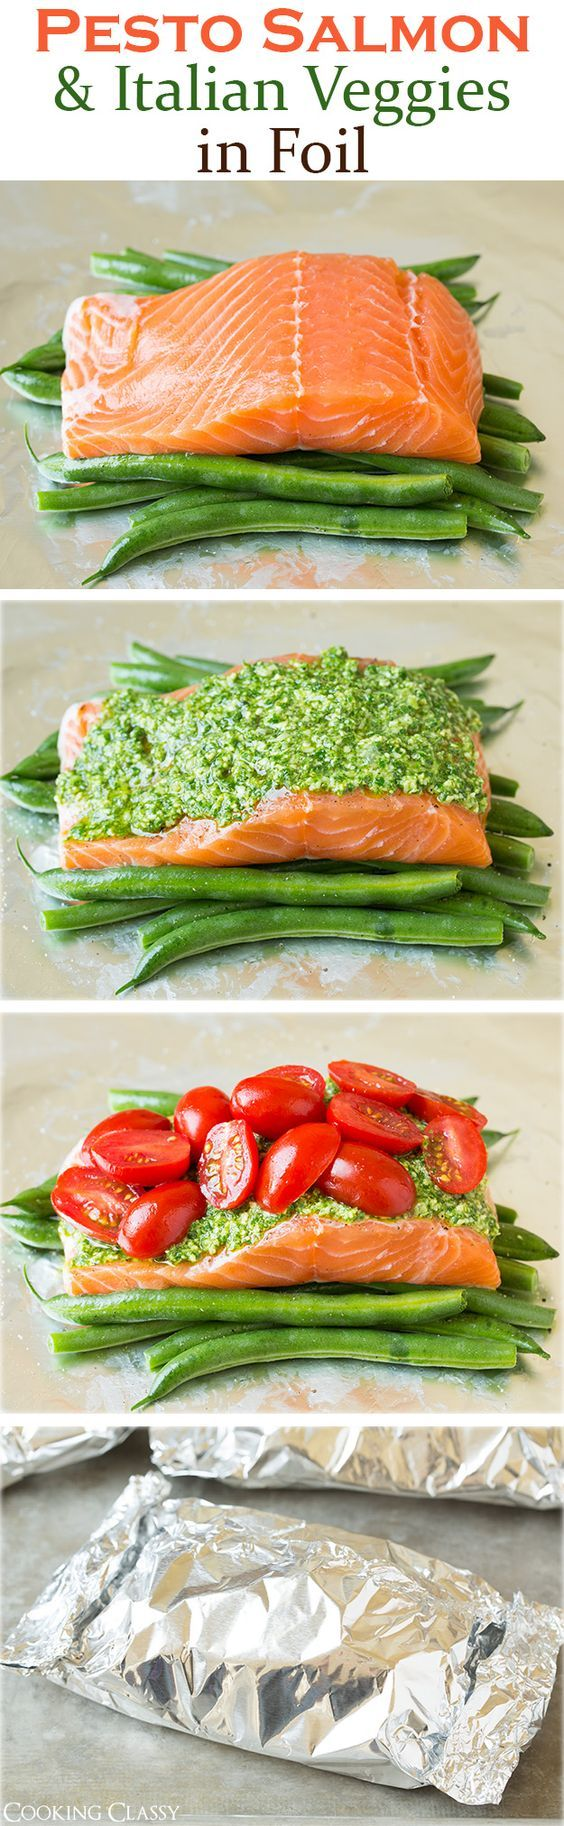 Pesto Salmon and Italian Veggies in Foil - this is an easy, flavorful dinner that is sure to please! So delicious!::